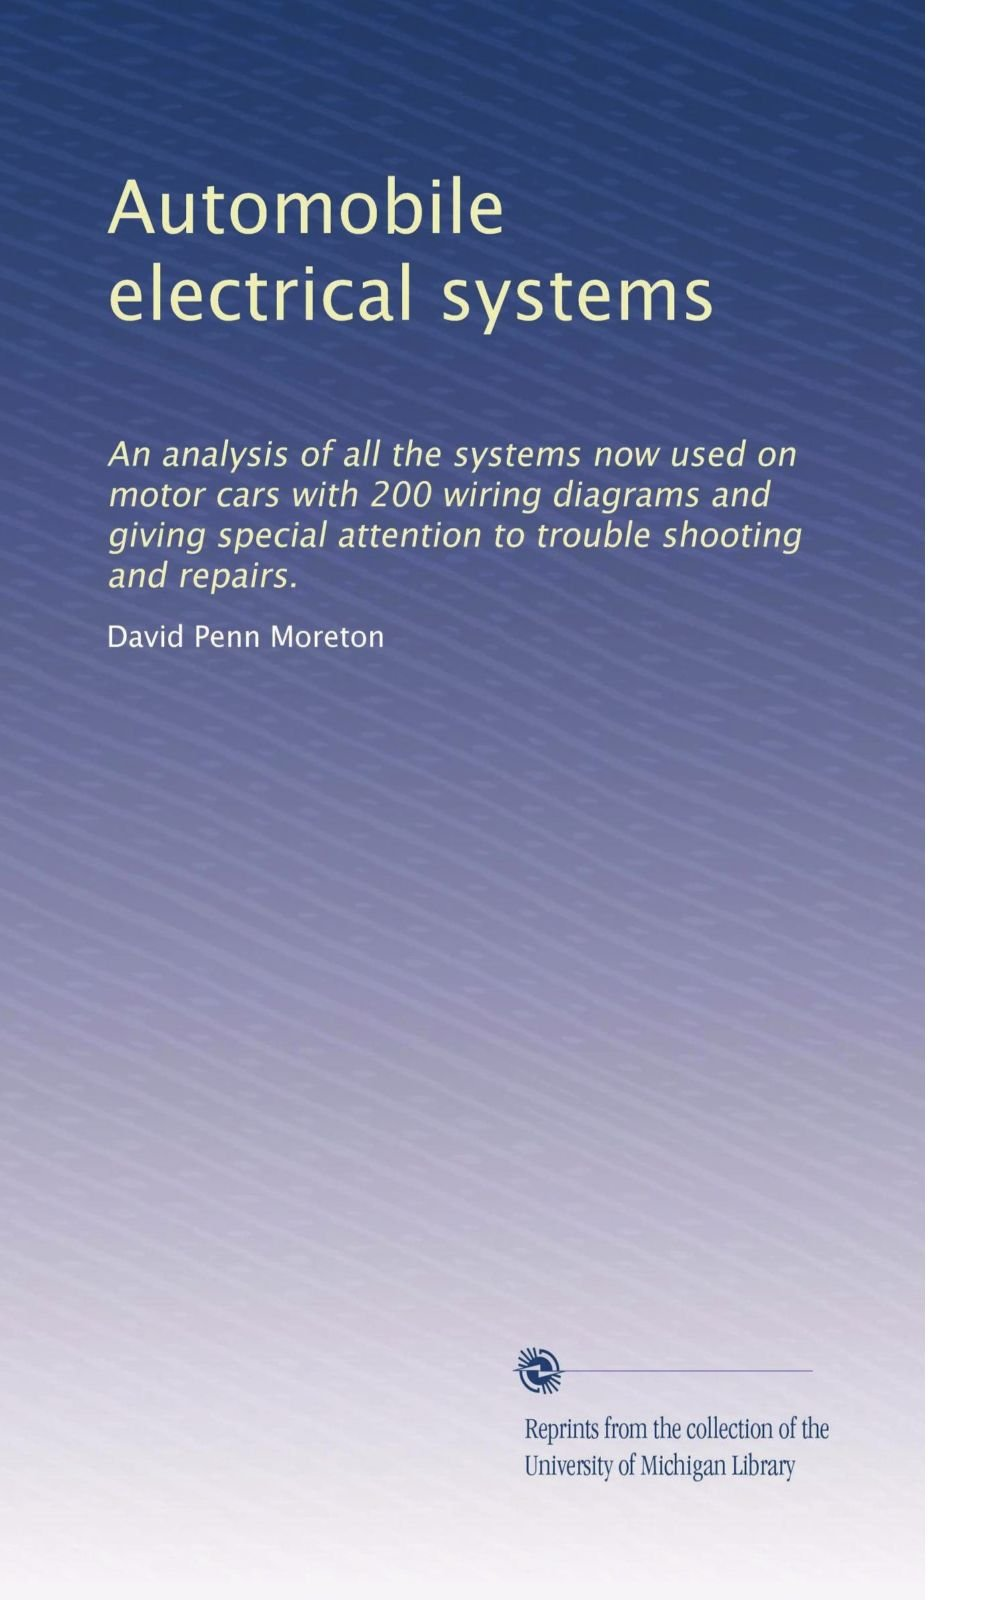 Automobile electrical systems: An analysis of all the systems now used on motor cars with 200 wiring diagrams and giving special attention to trouble shooting and repairs. pdf epub